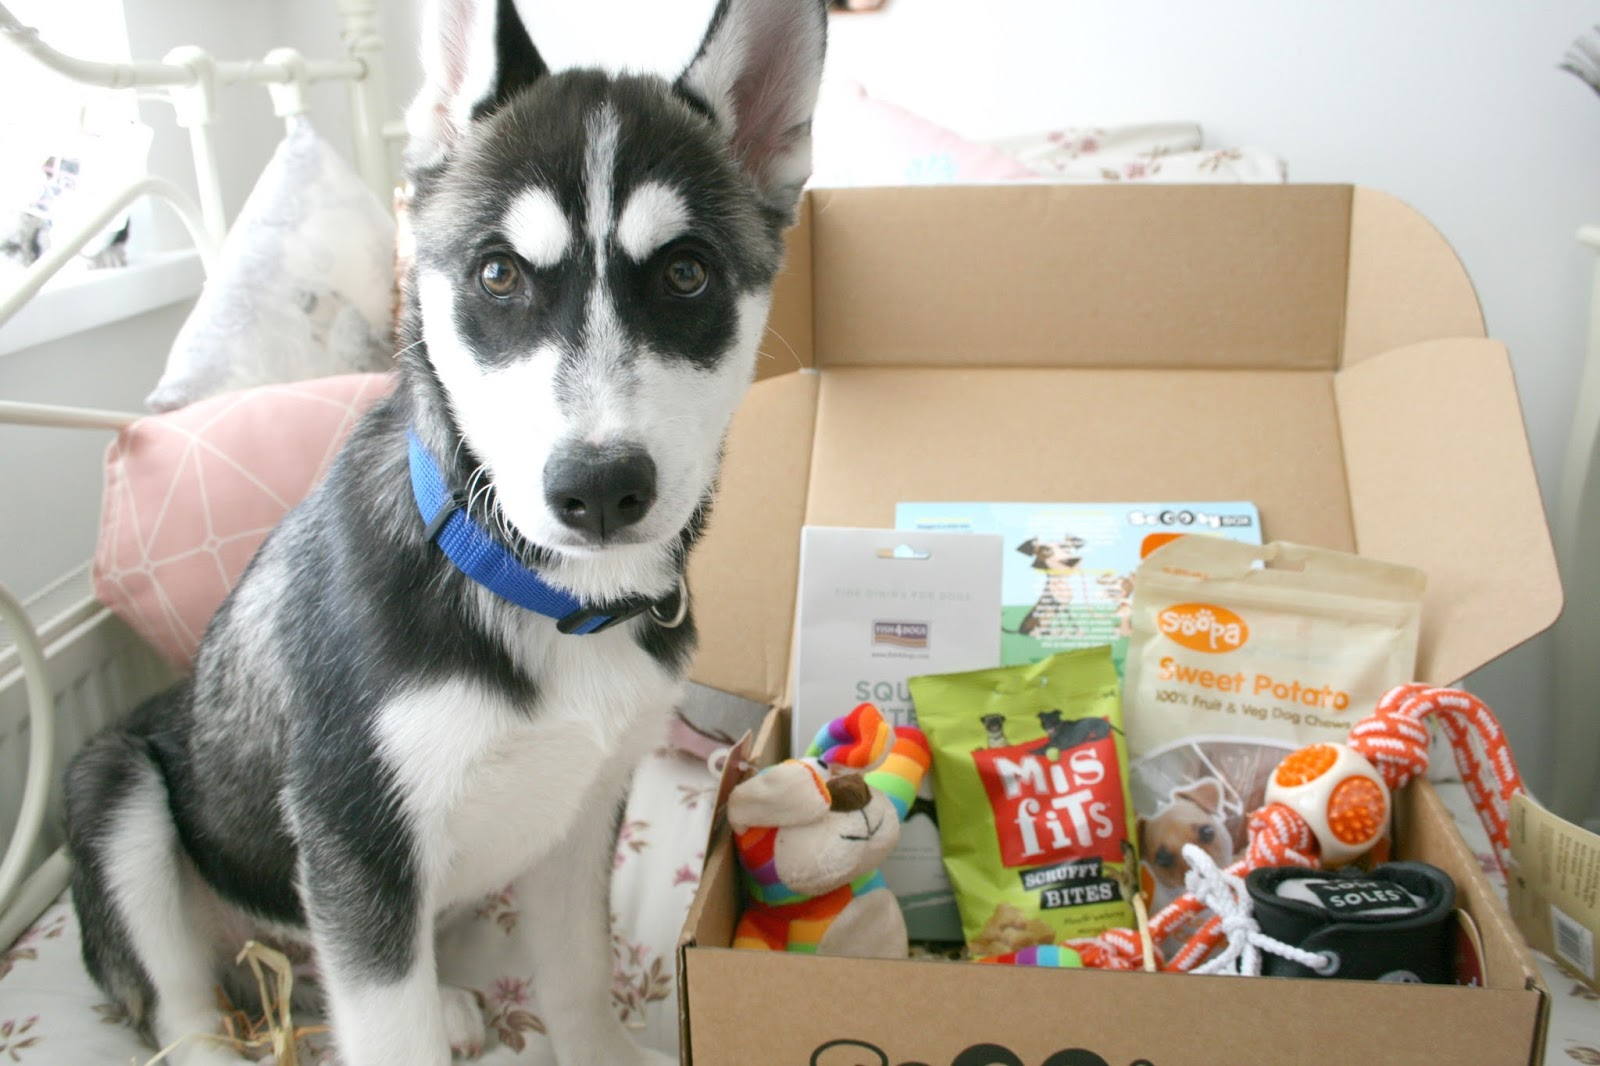 August Scooby Box Husky Dog Subscription Box